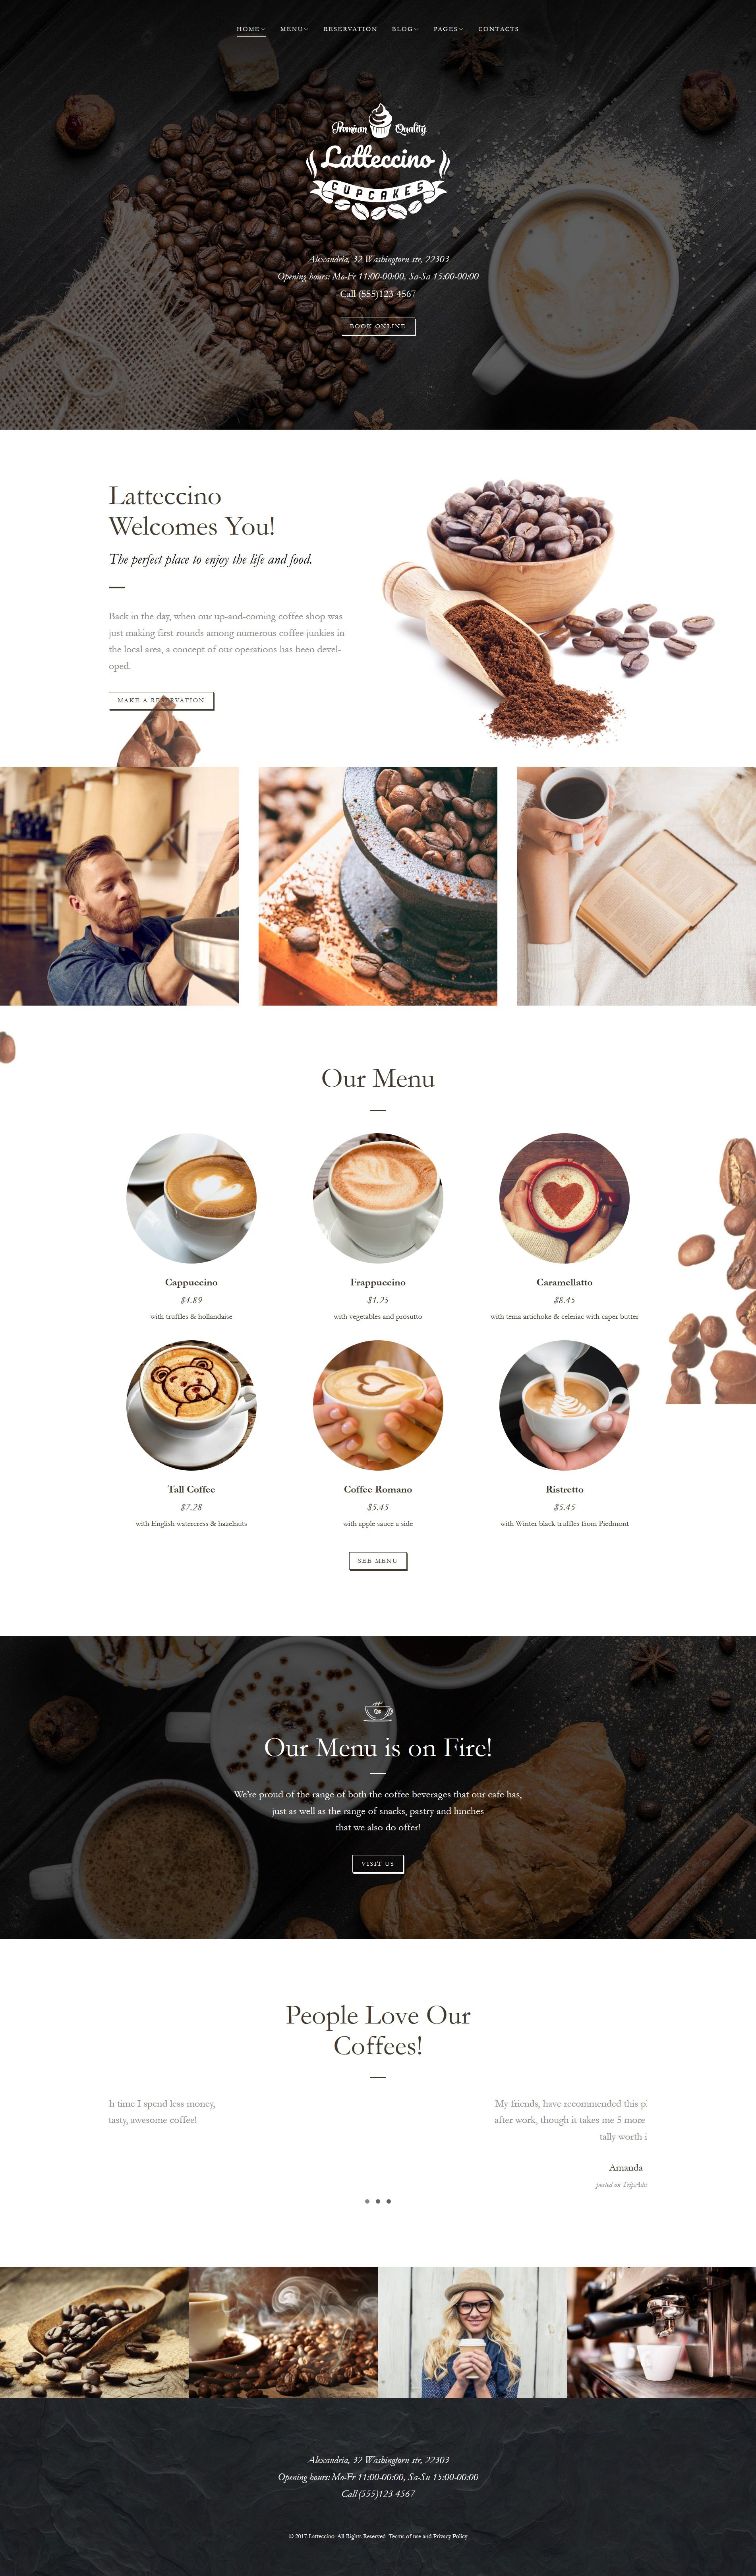 Want to tell the whole world about the specialty of your cafe? Choose this fully adaptive and user-friendly Coffee Shop WordPress Theme to boost your business online. #onlinestoredesign #wordpressforbeginners #wordpresstheme #wordpresstemplate #coffee #coffeeshop   https://www.templatemonster.com/wordpress-themes/63569.html